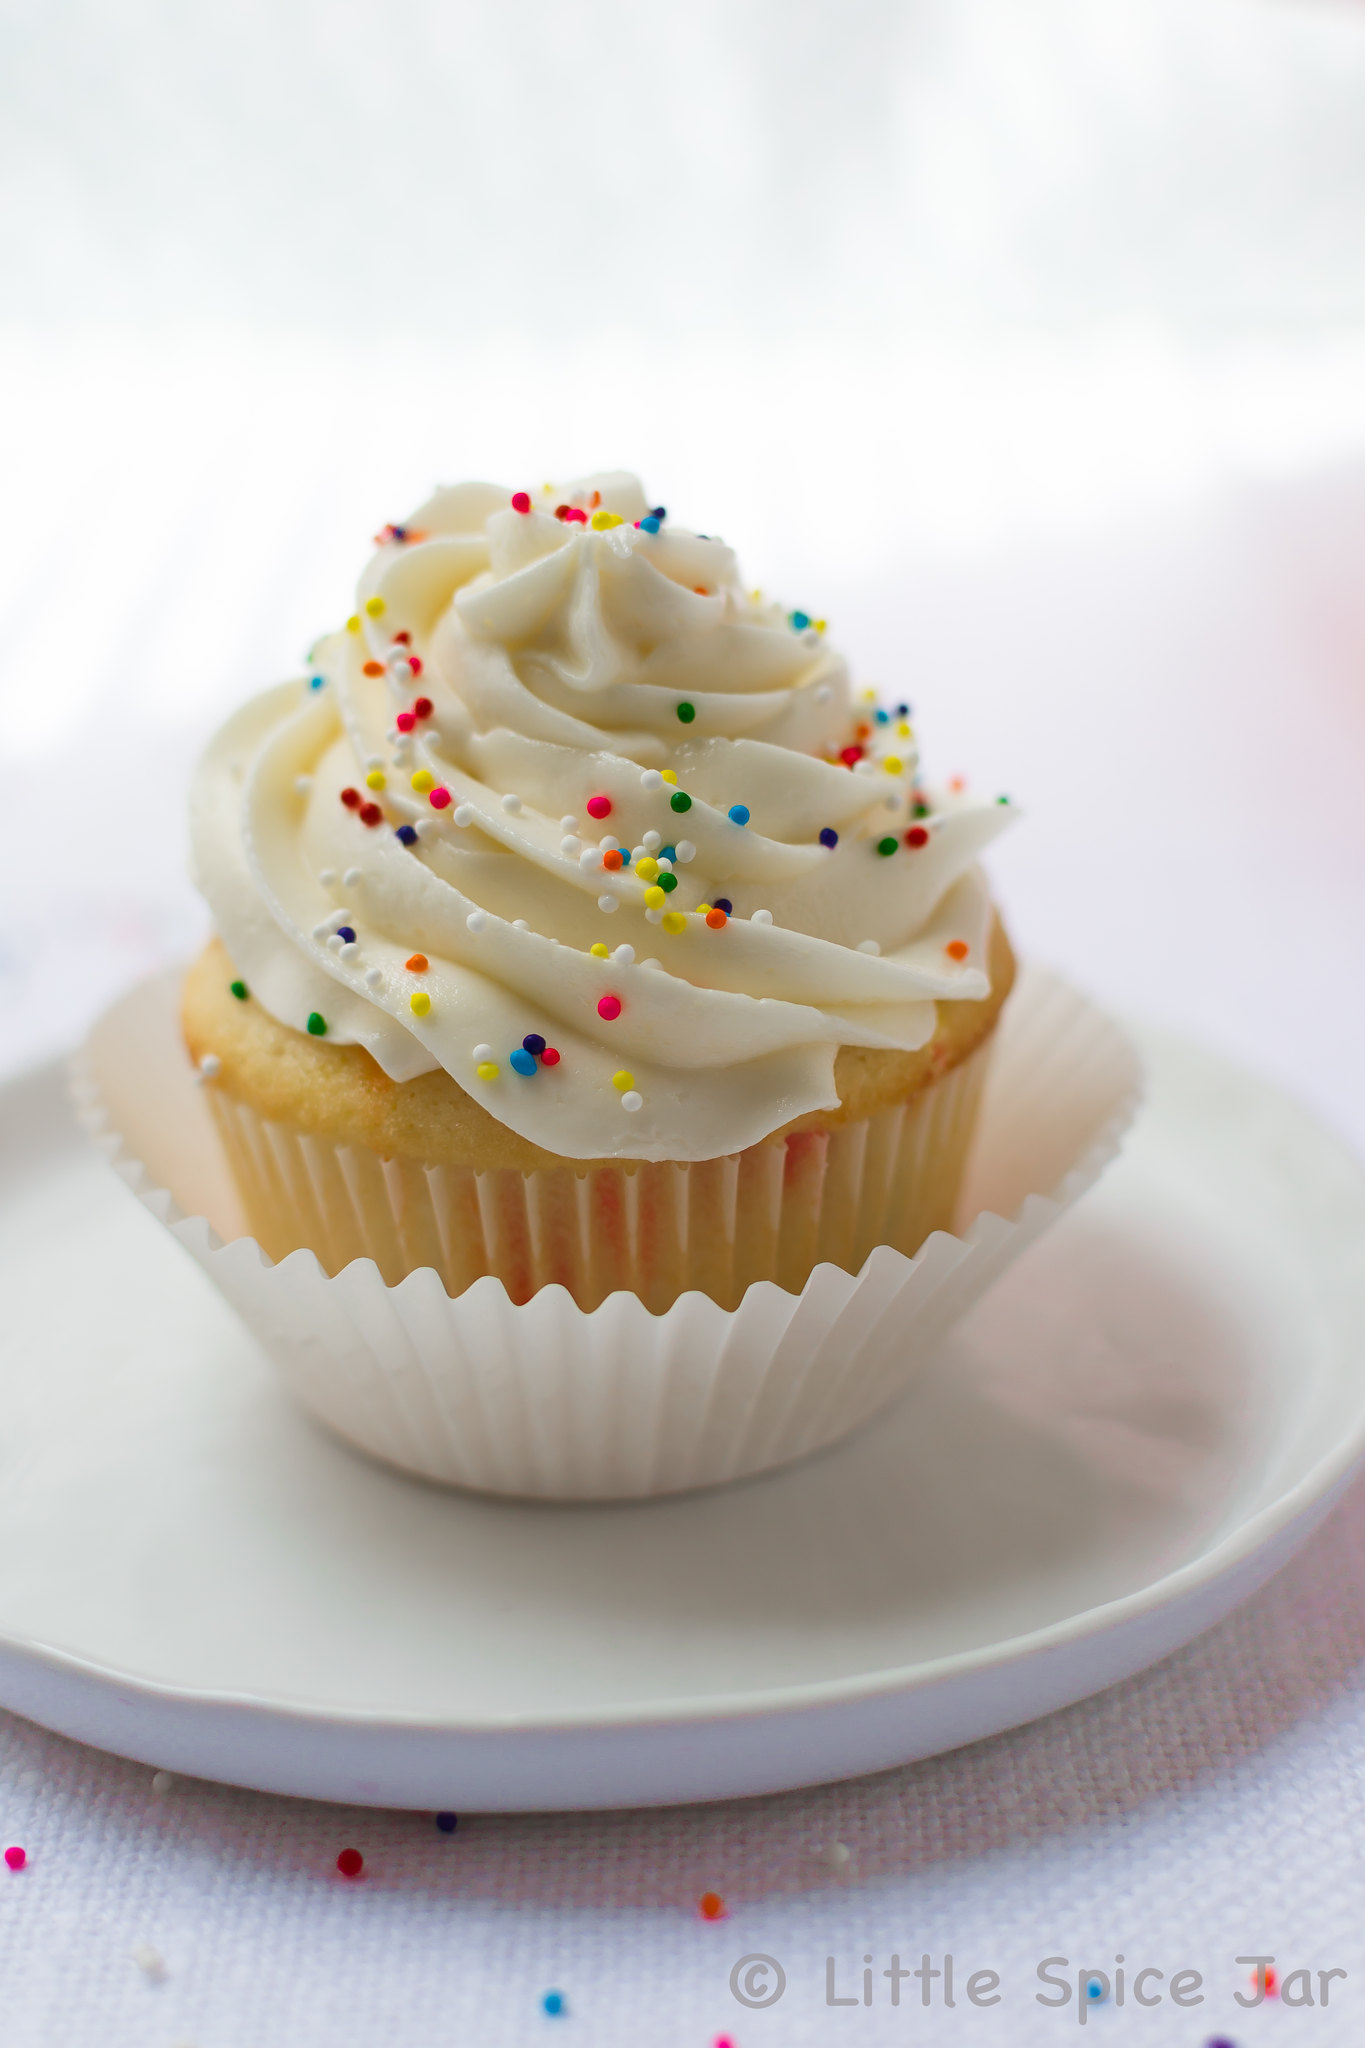 Confetti Funfetti Cupcakes Finished Confetti Funfetti Cupcakes - an EASY scratch recipe that's so delicious that you'll never buy the cake mix again! #confetticupcakes #cupcakes #funfetticupcakes | Littlespicejar.com